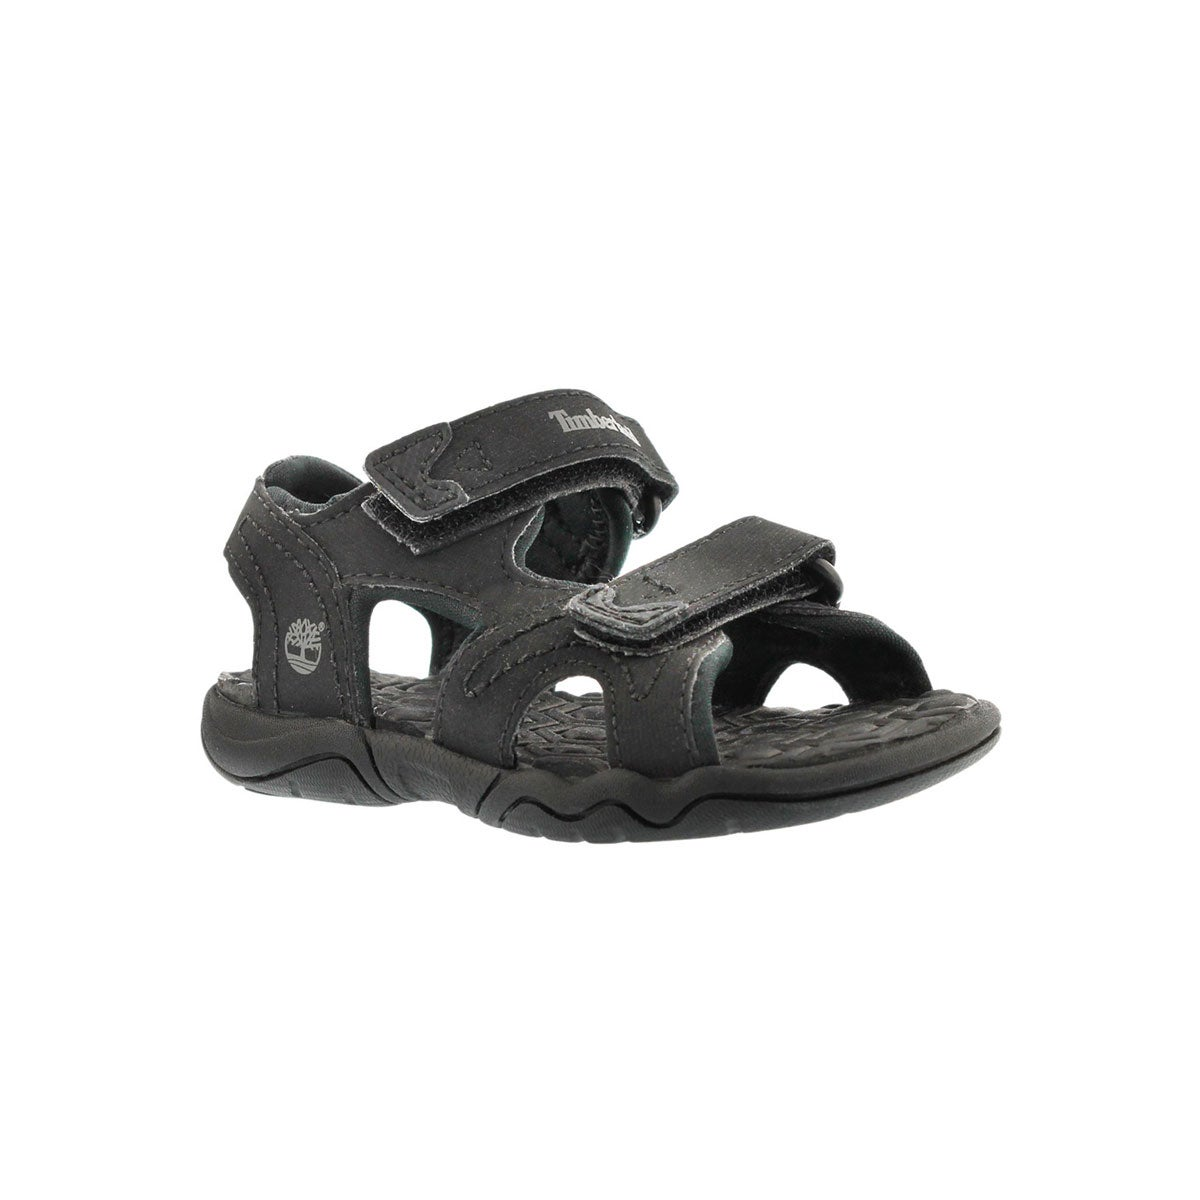 Inf Adventure Seeker black sport sandal